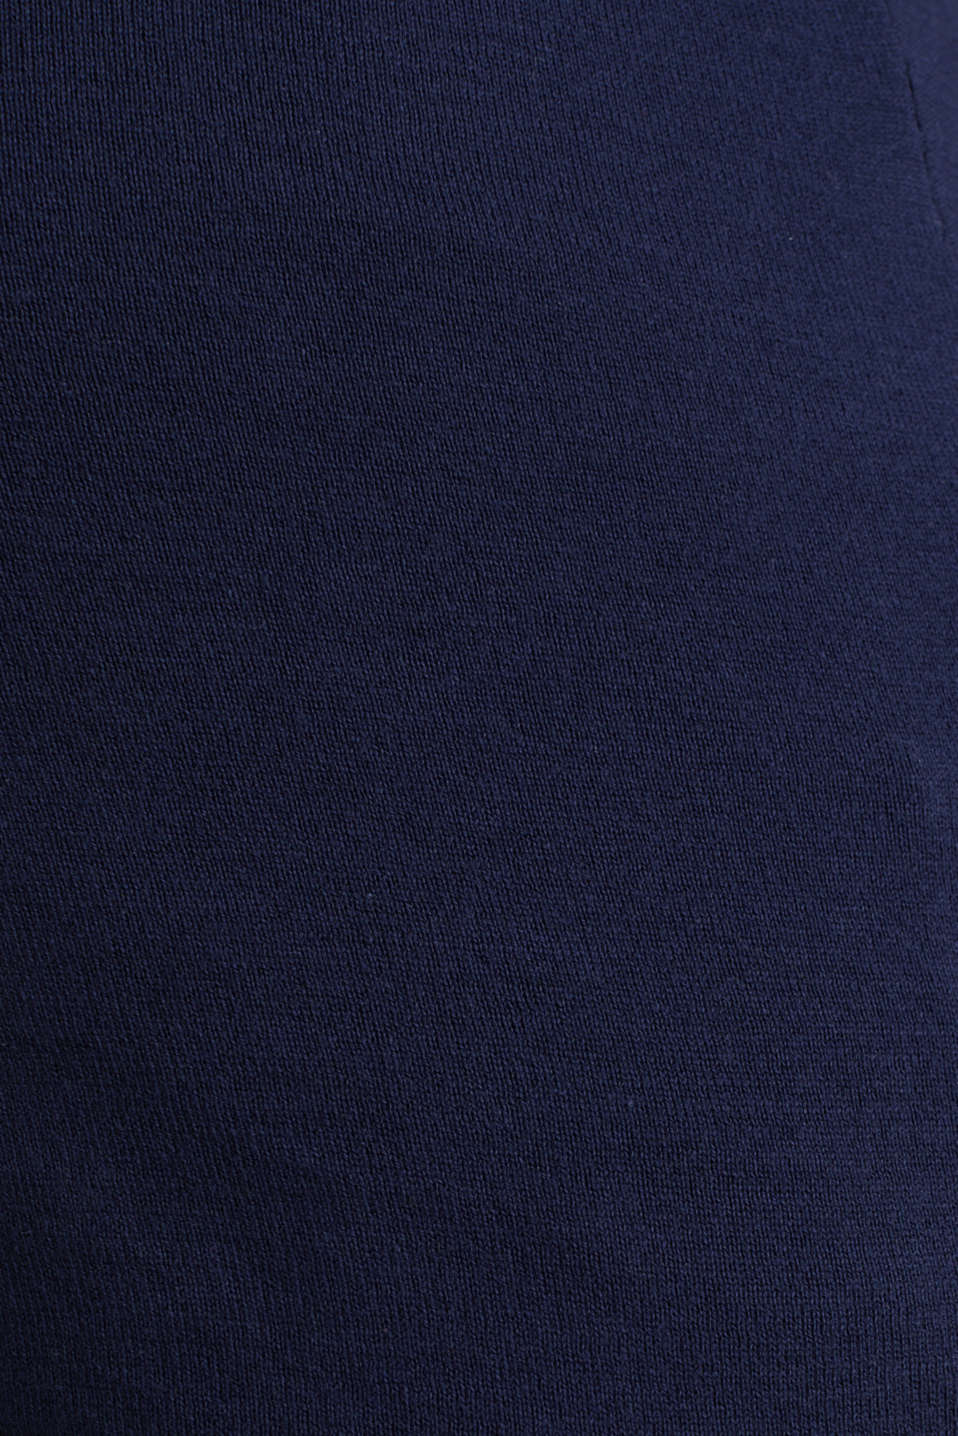 Polo shirt jumper in 100% cotton, LCNIGHT BLUE, detail image number 4